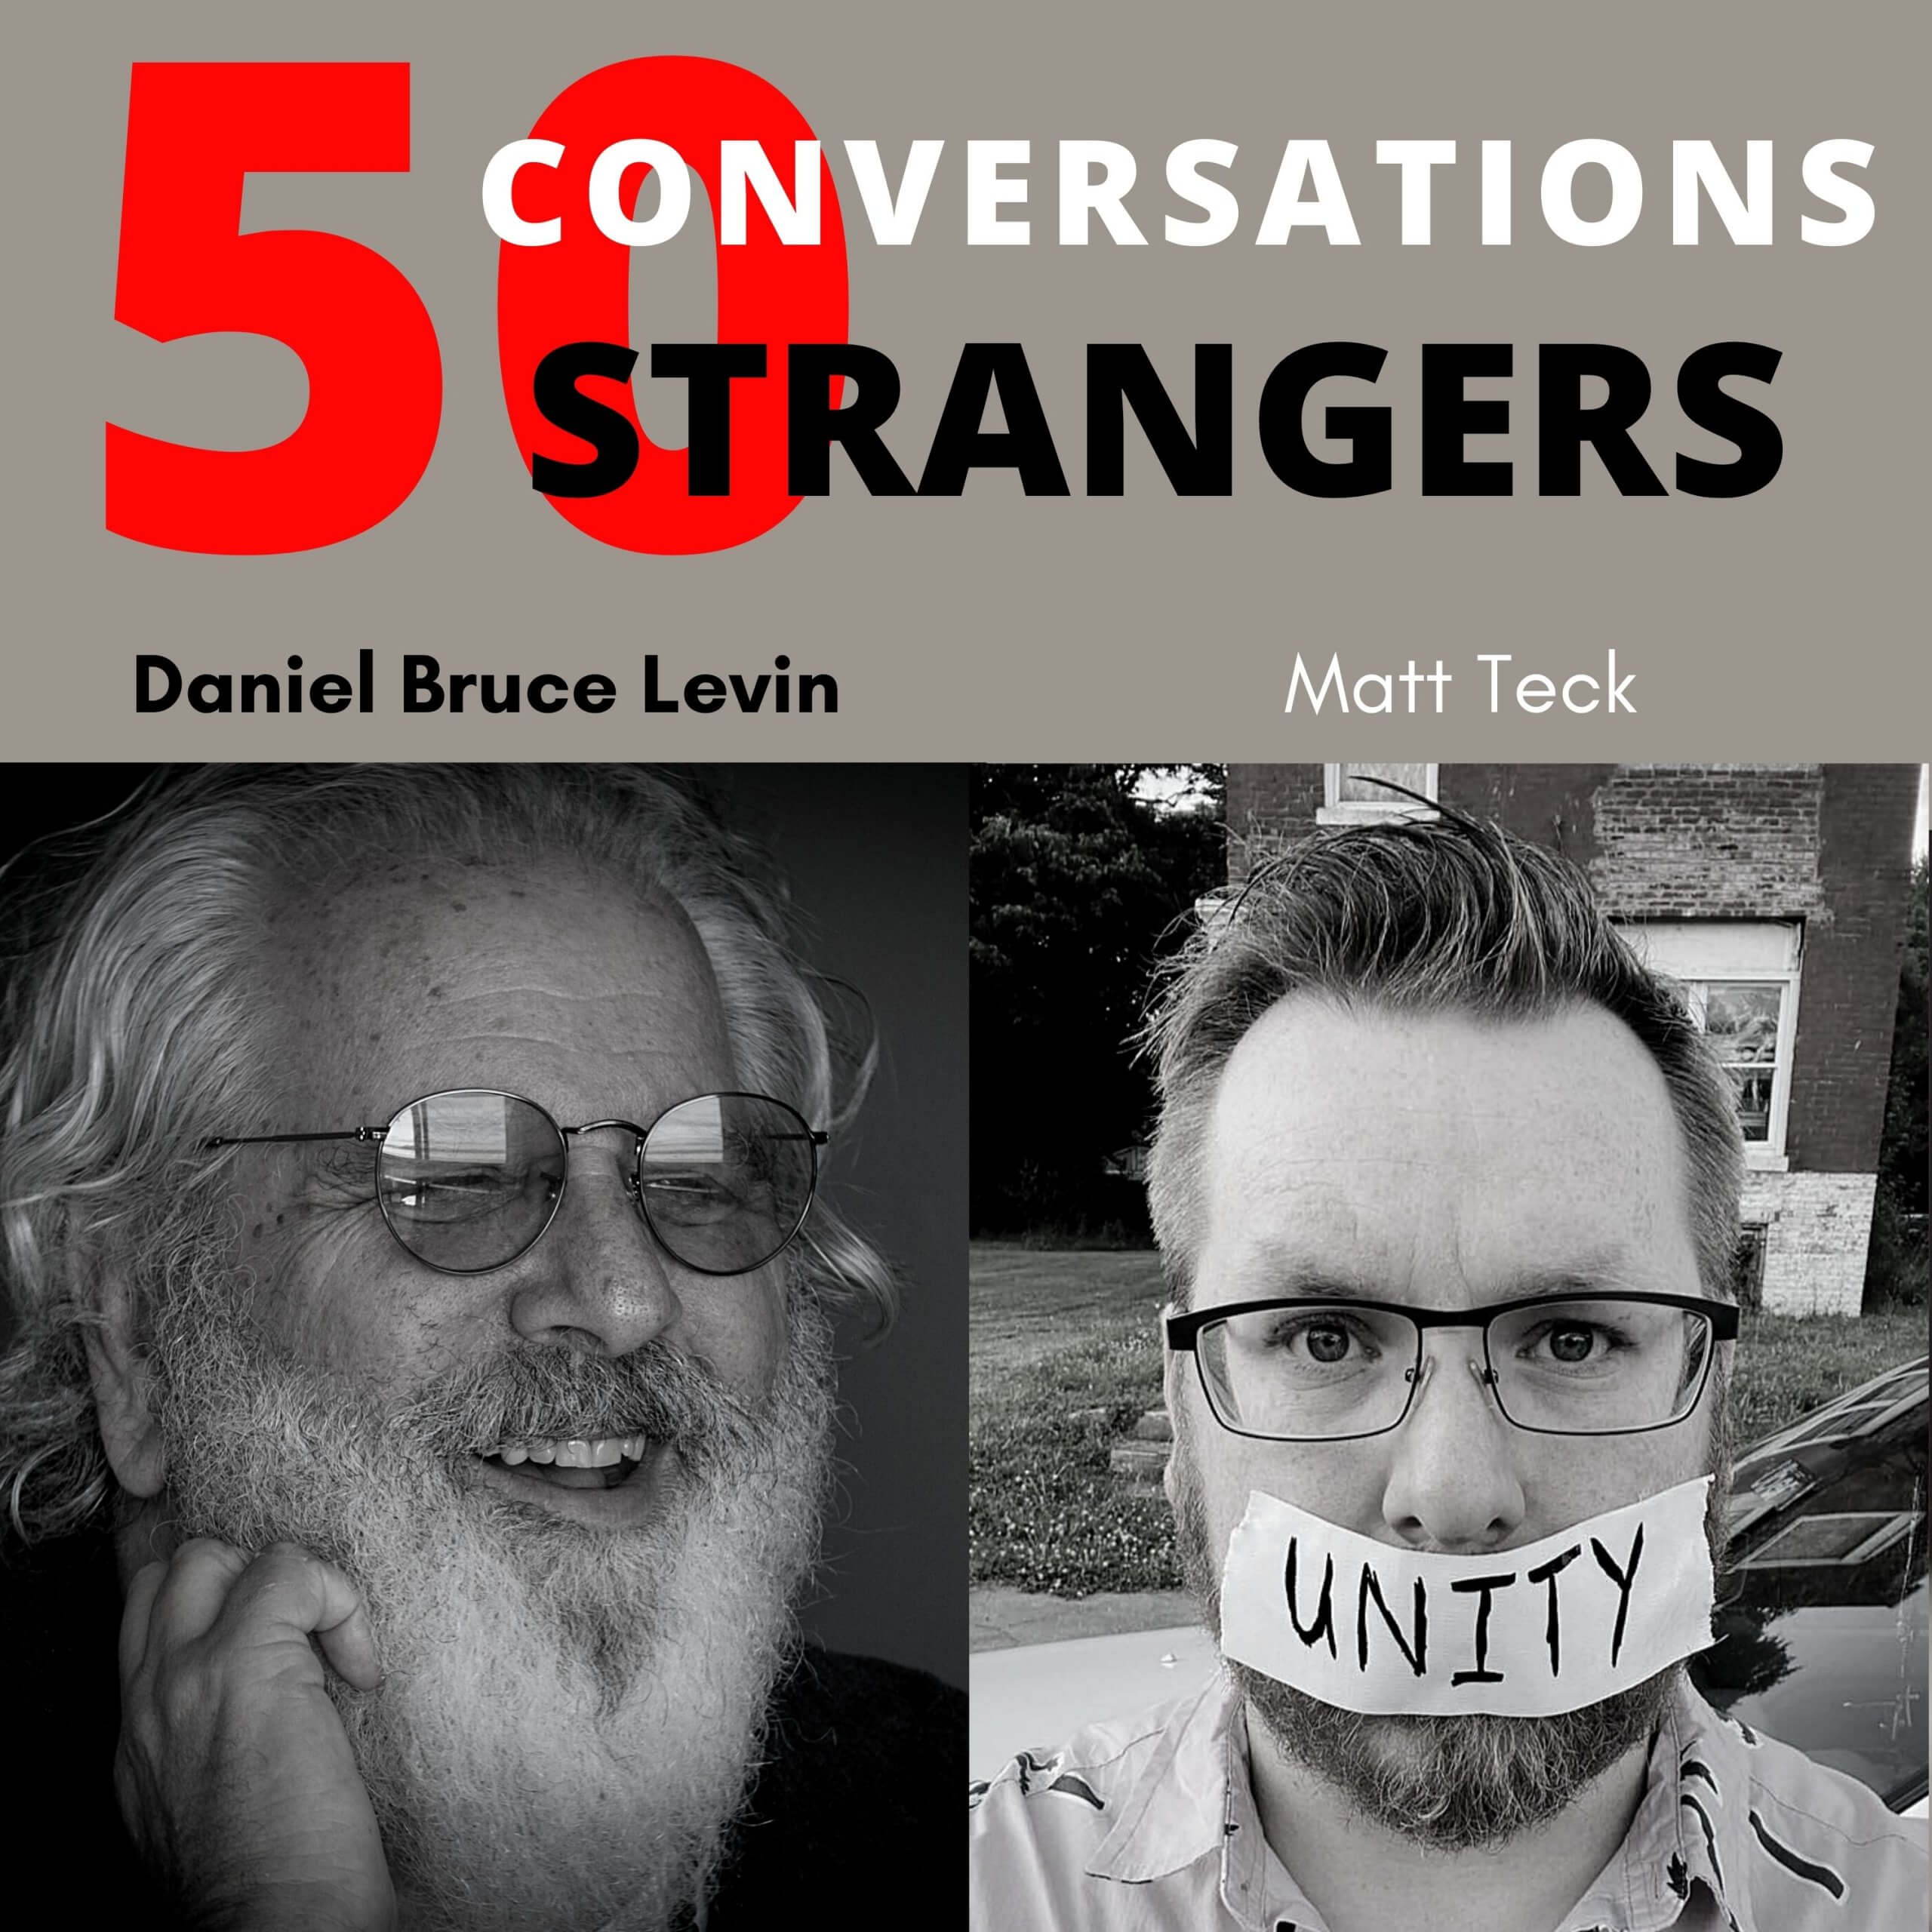 50 conversations with 50 Strangers with Matt Teck